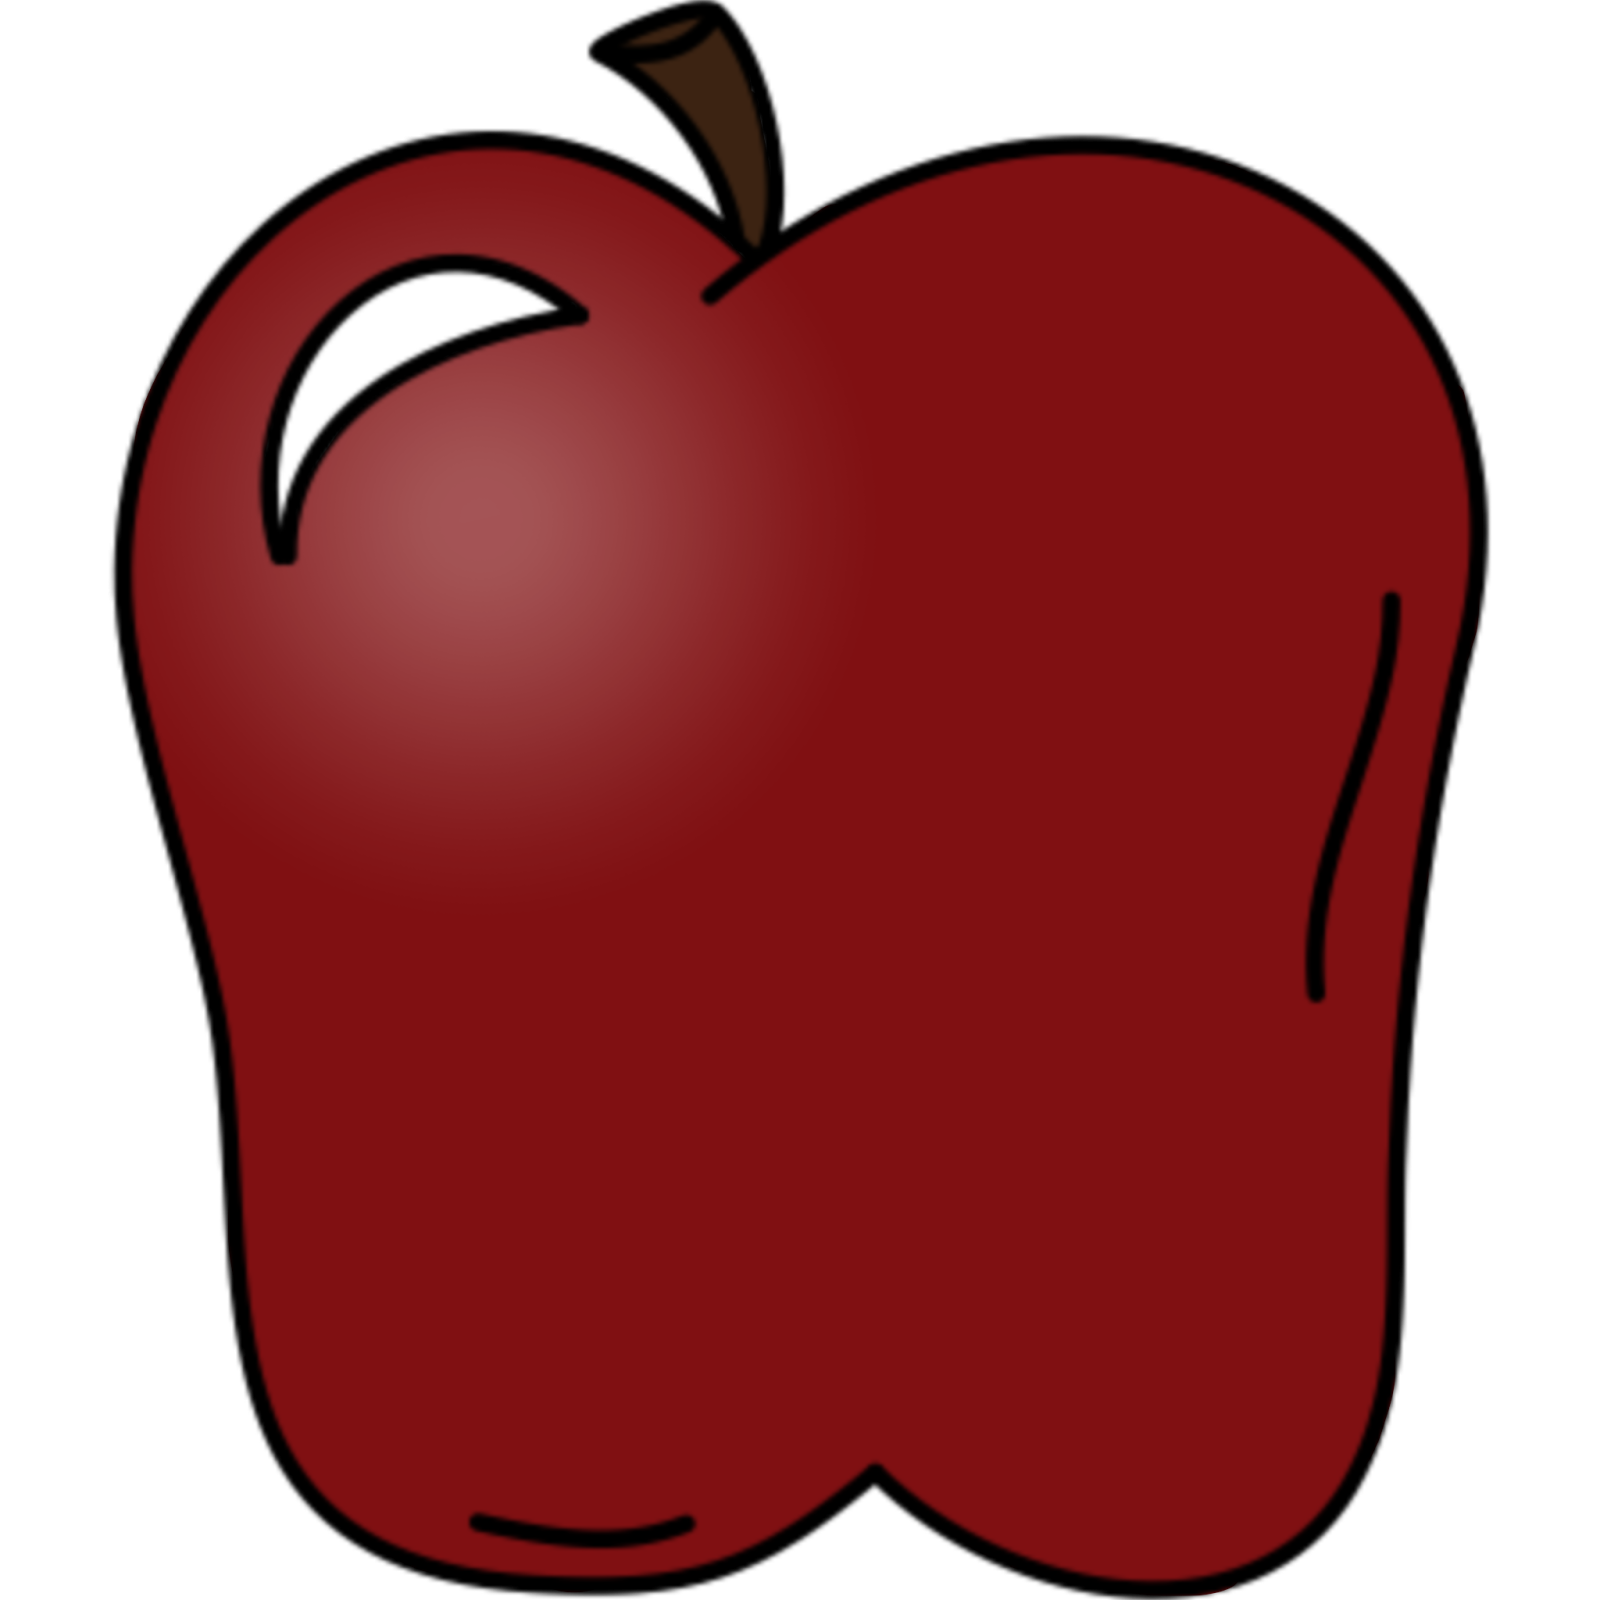 Apples Red Kids - ClipArt Best